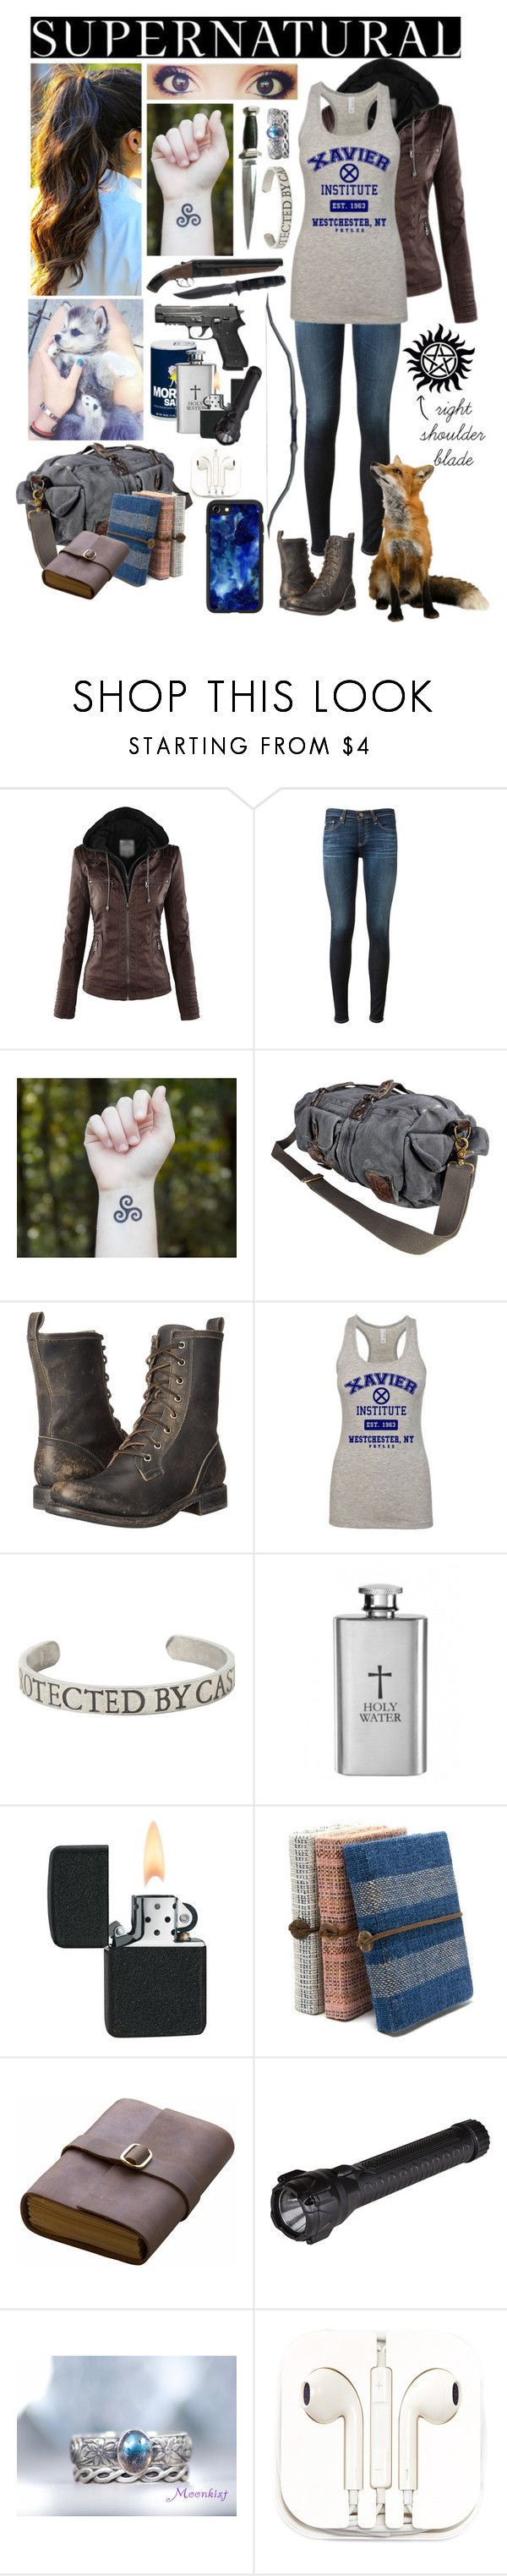 """""""Supernatural OC - just another job"""" by seachild41539 ❤ liked on Polyvore featuring AG Adriano Goldschmied, VIPARO, Frye, CO, Handle, Hot Topic, Rear View Prints, 5.11 Tactical, PhunkeeTree and Casetify"""